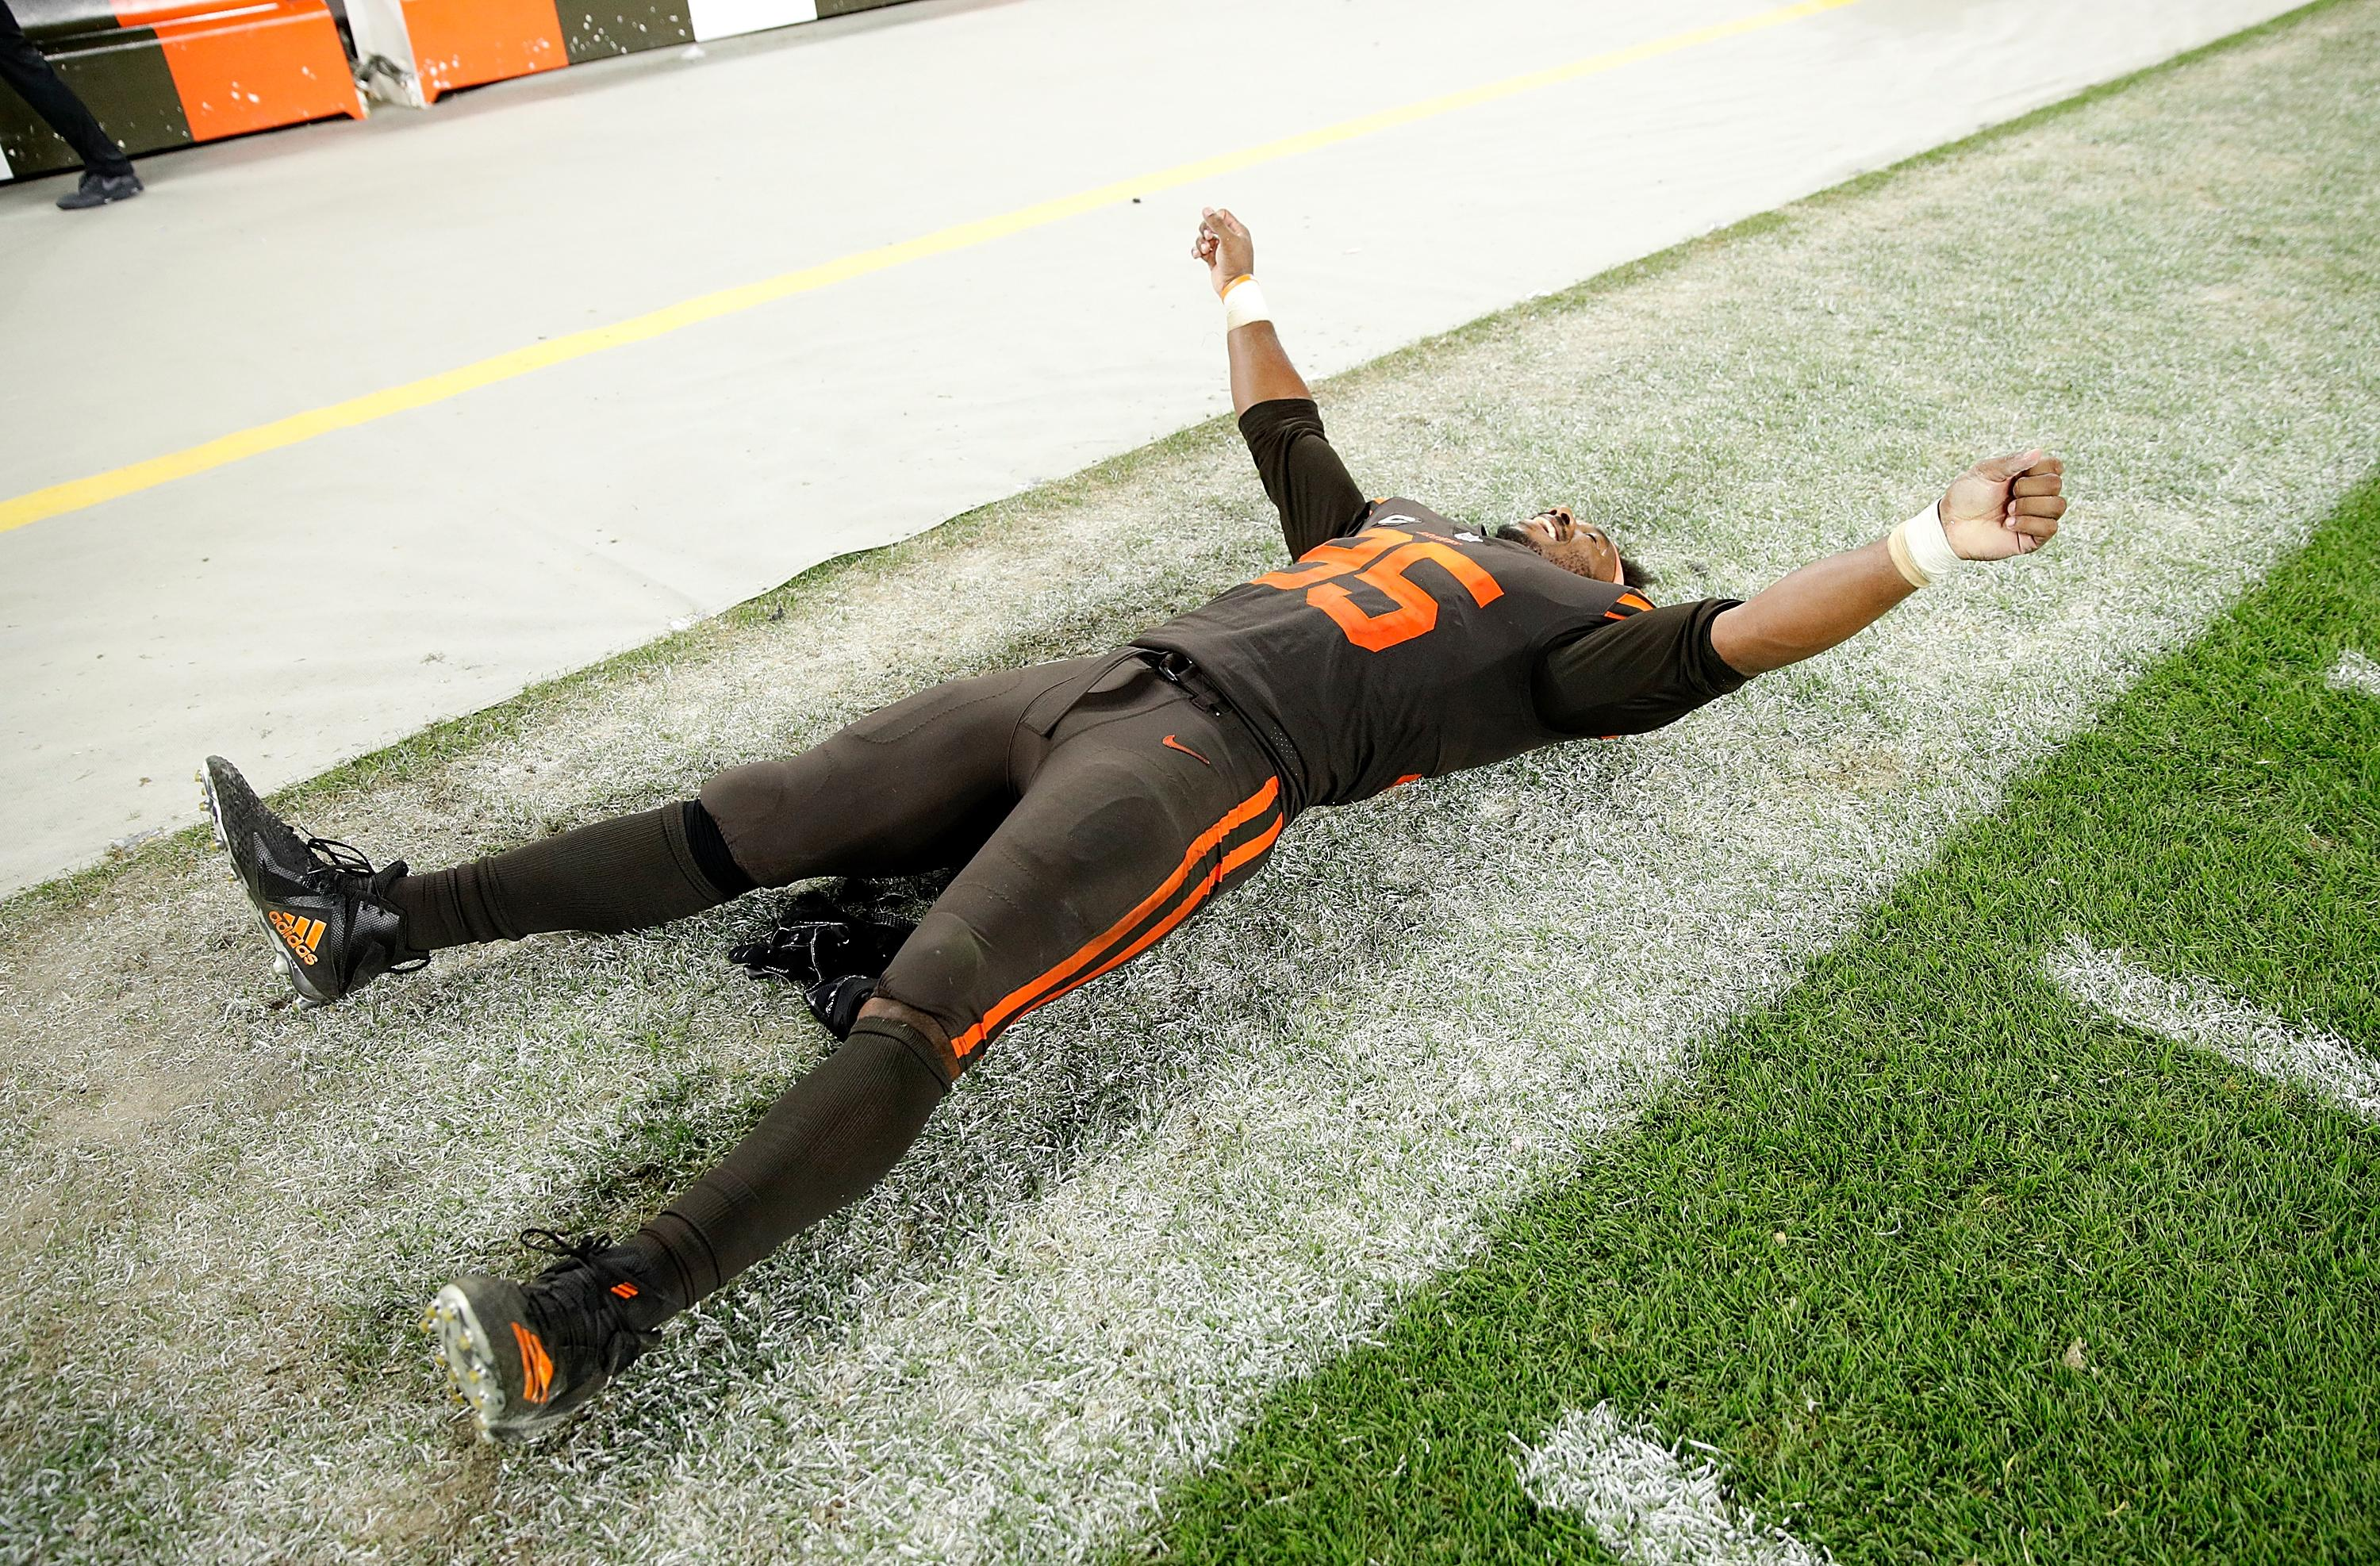 Myles Garrett cannot believe it after the Cleveland Browns beat the New York Jets